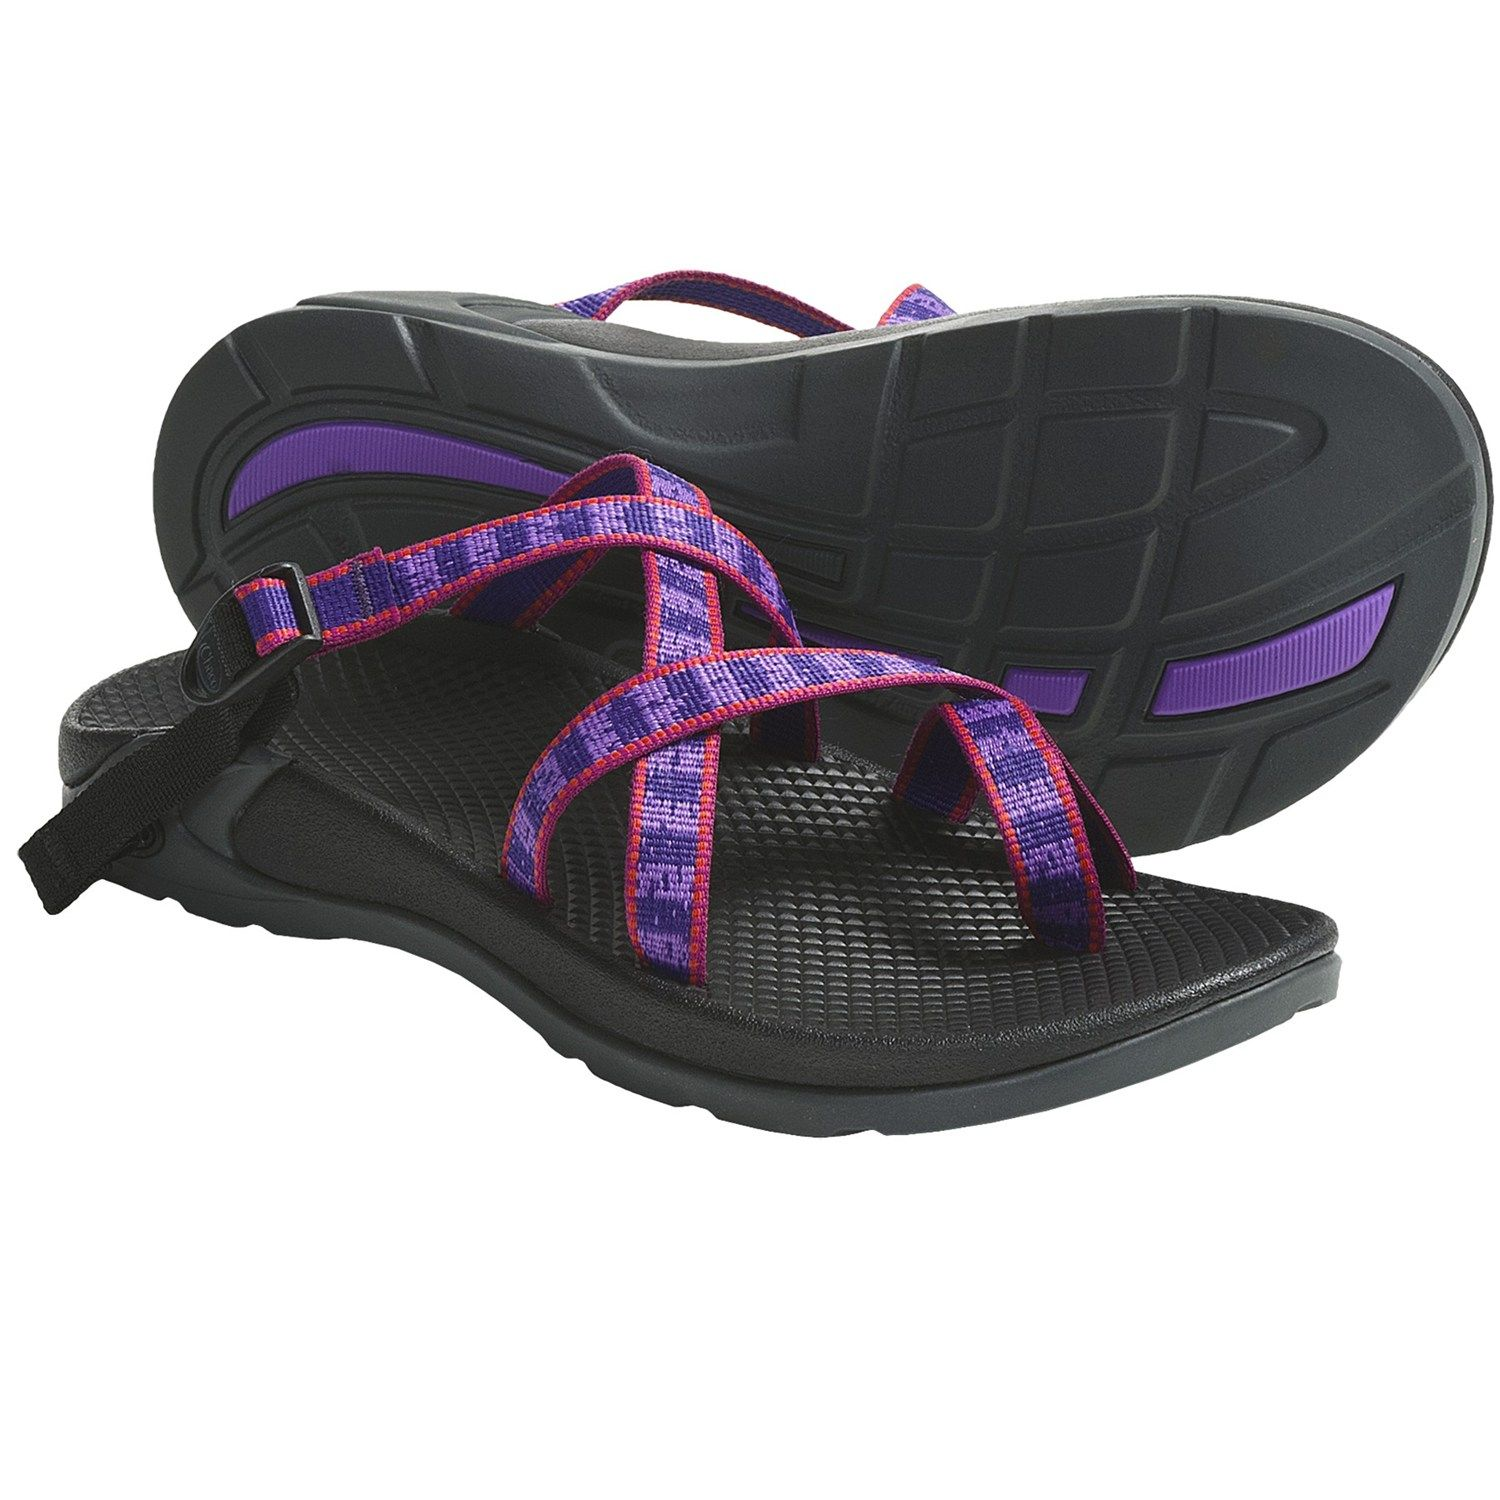 Chaco Zong Sport Sandals (For Women) Sport sandals